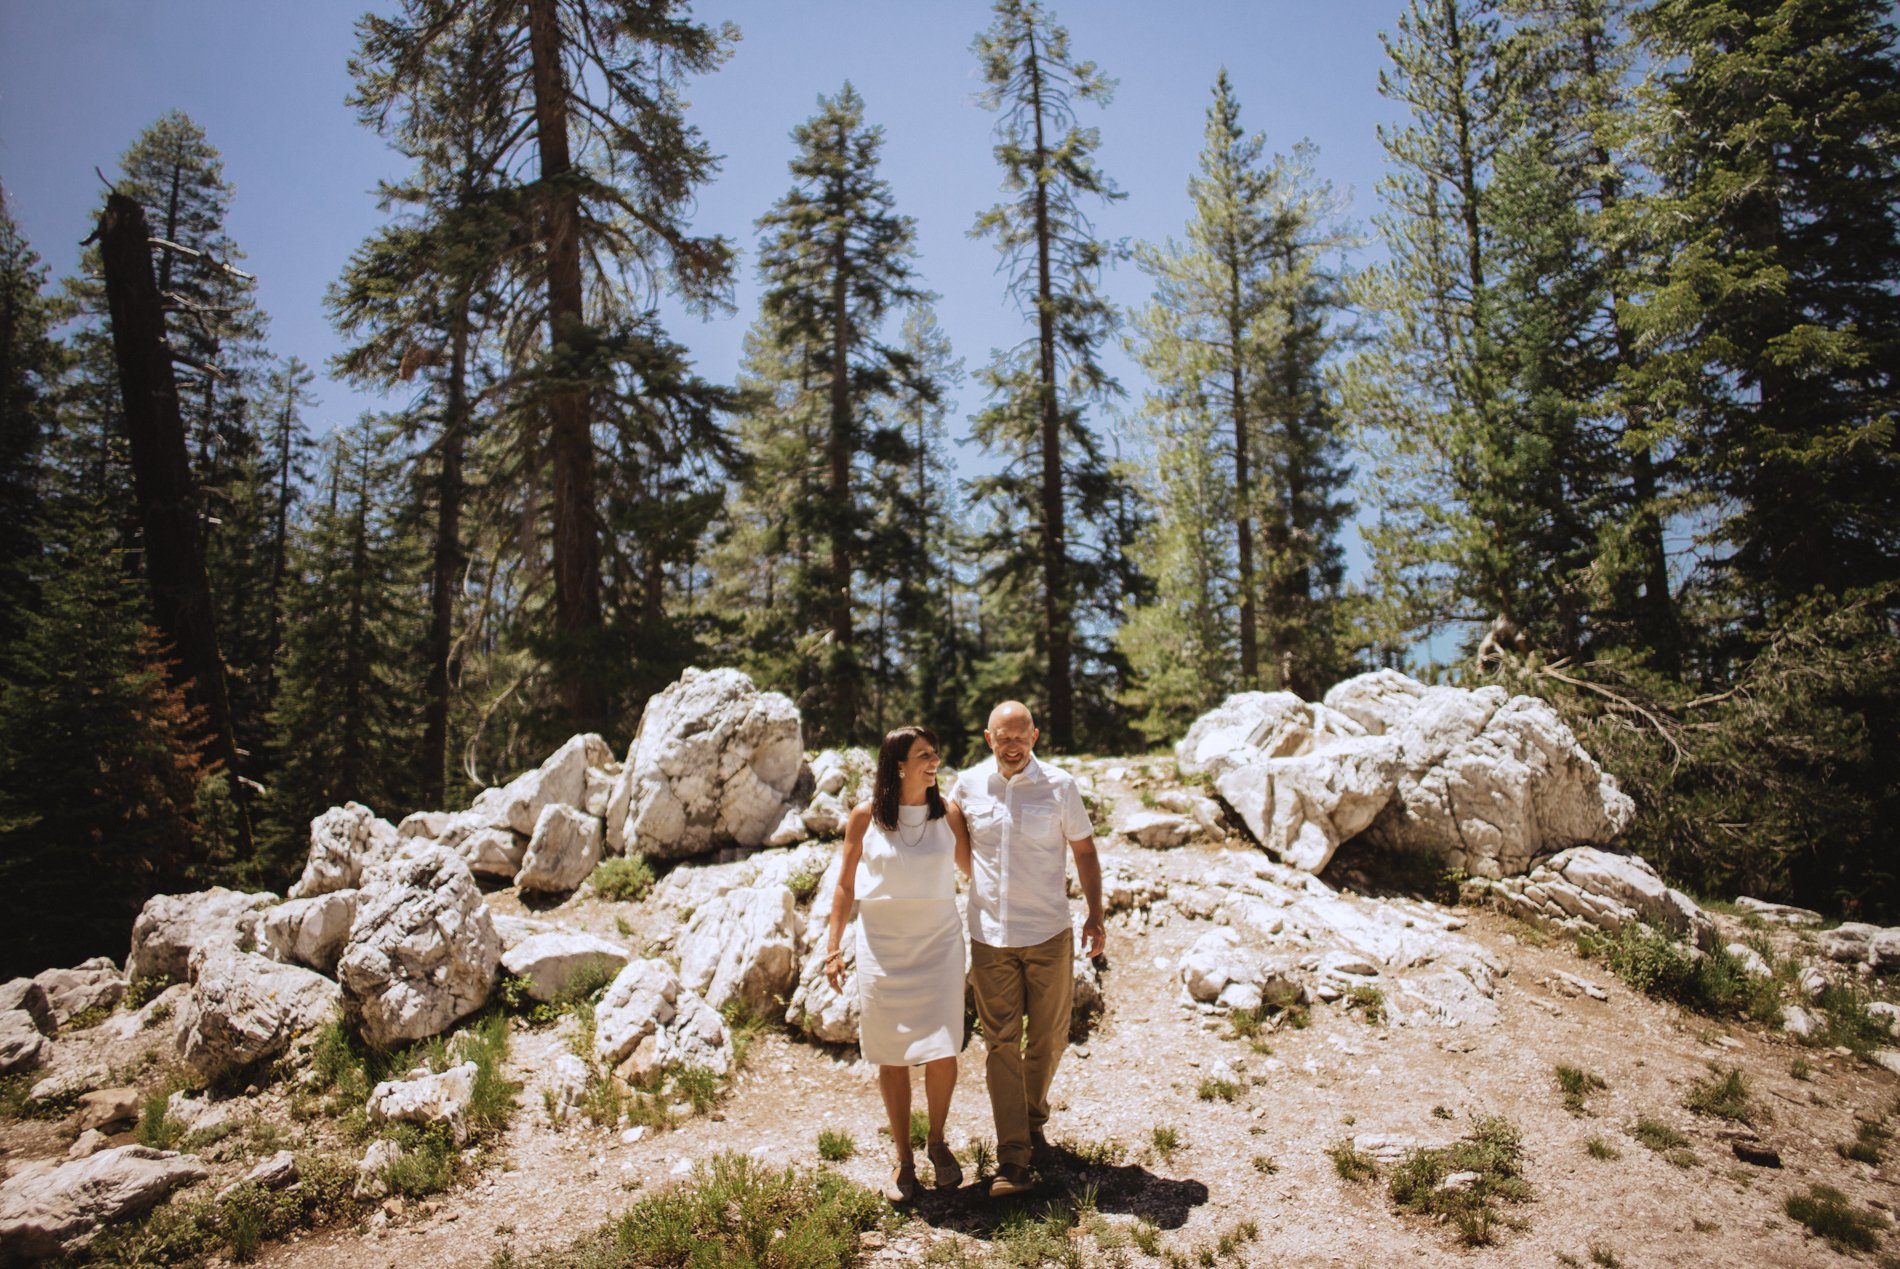 yosemite taft point national park wedding elopement adventure half dome california intimate wedding